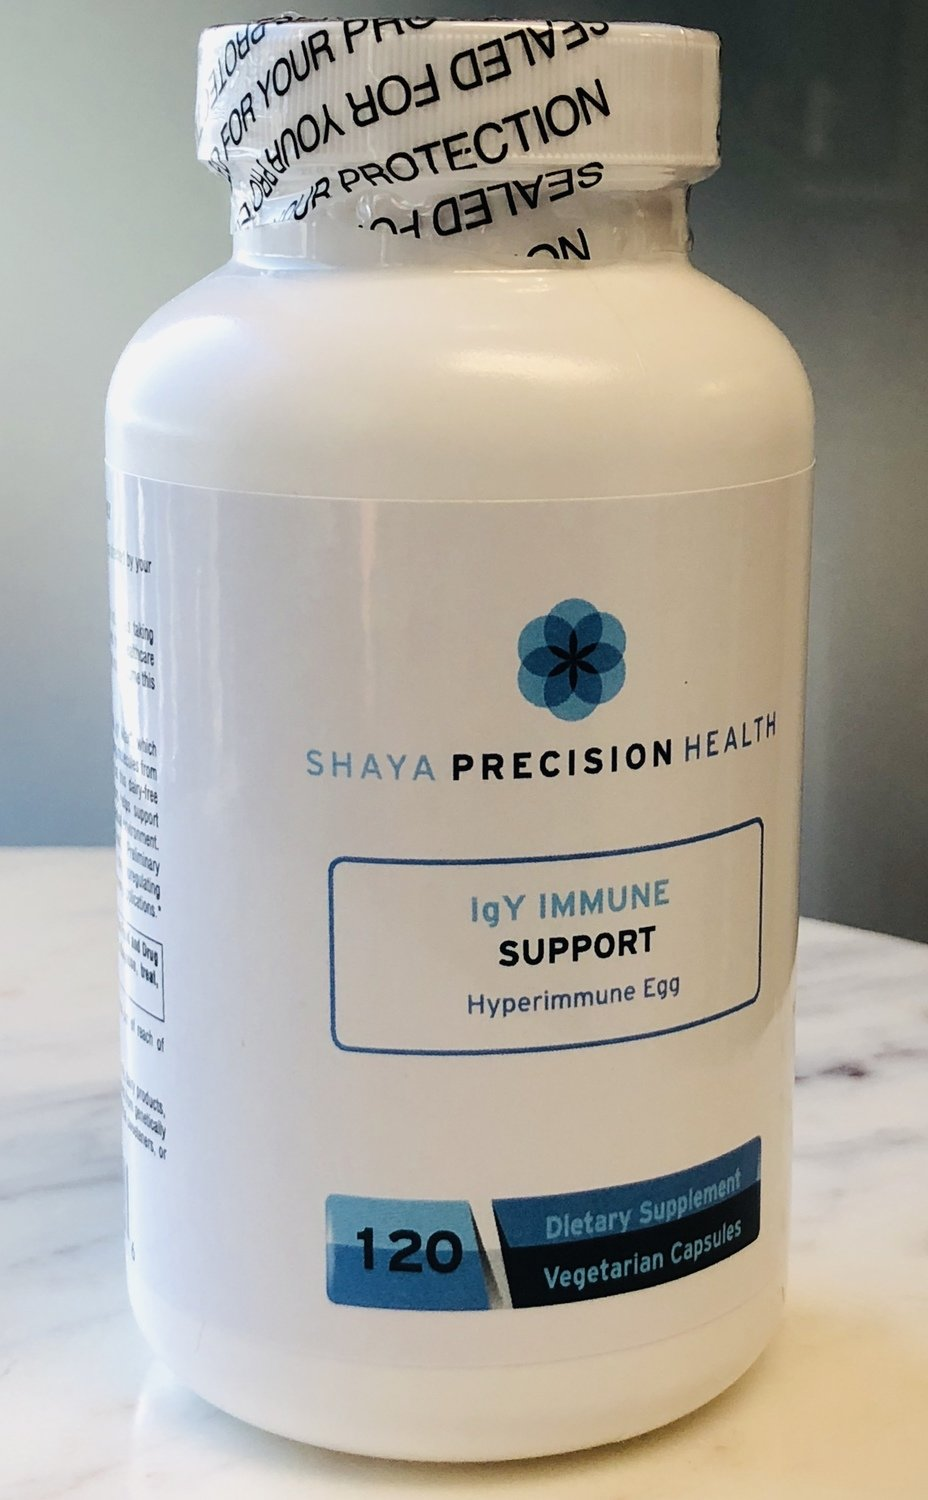 SPH IgY IMMUNE SUPPORT